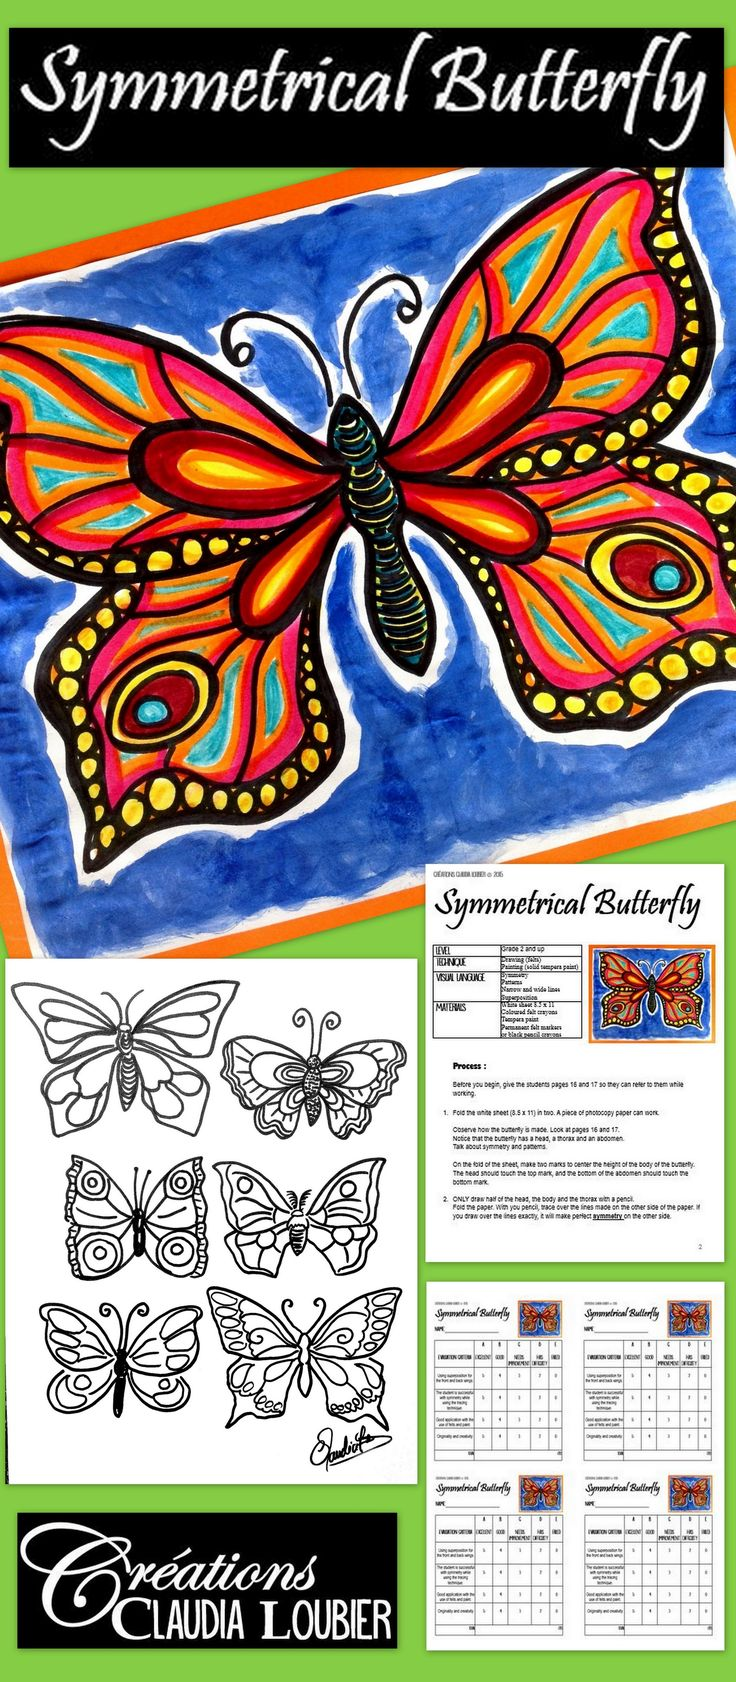 Spring has arrived, and with it...BUTTERFLIES! Teach your students how to make magnificent butterflies, while working on many different art techniques like symmetry, lines and patterns. For grades 2 and up. Grade 1 students are able to do this as well ,with more supervision.   This document contains the complete process on how to make this project a reality, evaluation rubric and explanatory photos.